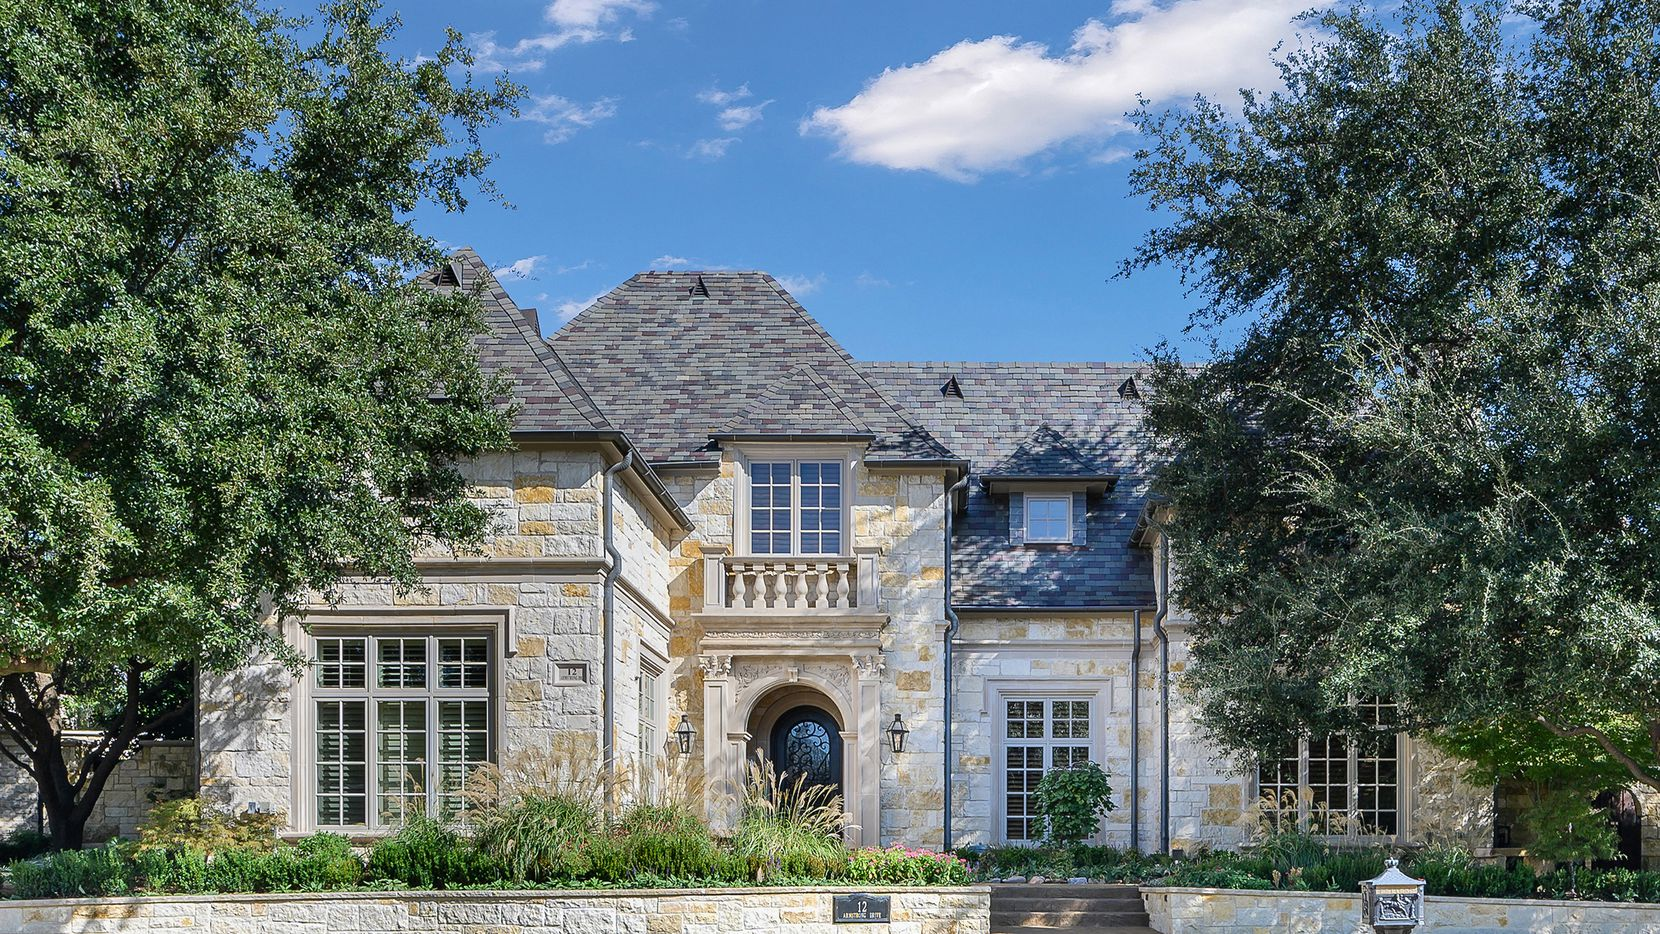 Priced at $1,649,000, the country French-style estate at 12 Armstrong Drive in The Villages of Stonebriar Park offers a park-like setting.